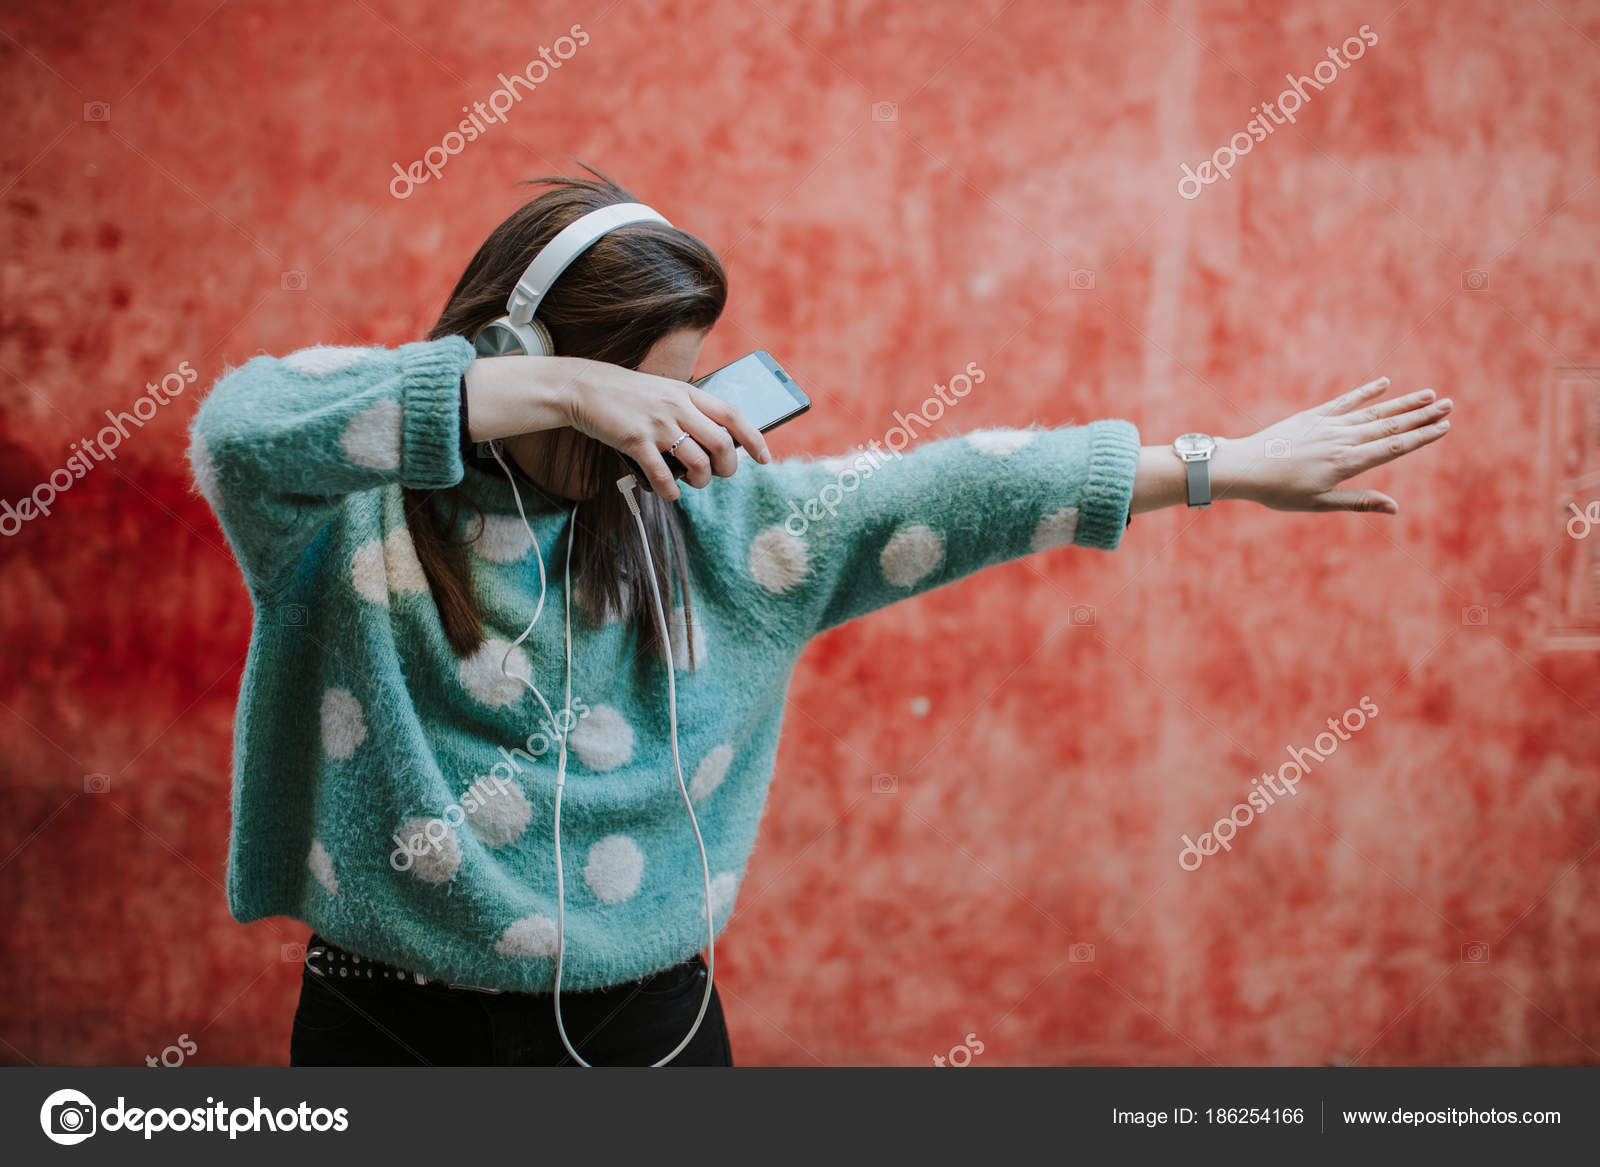 Woman Doing Dab Street Listening Music Her Headphones